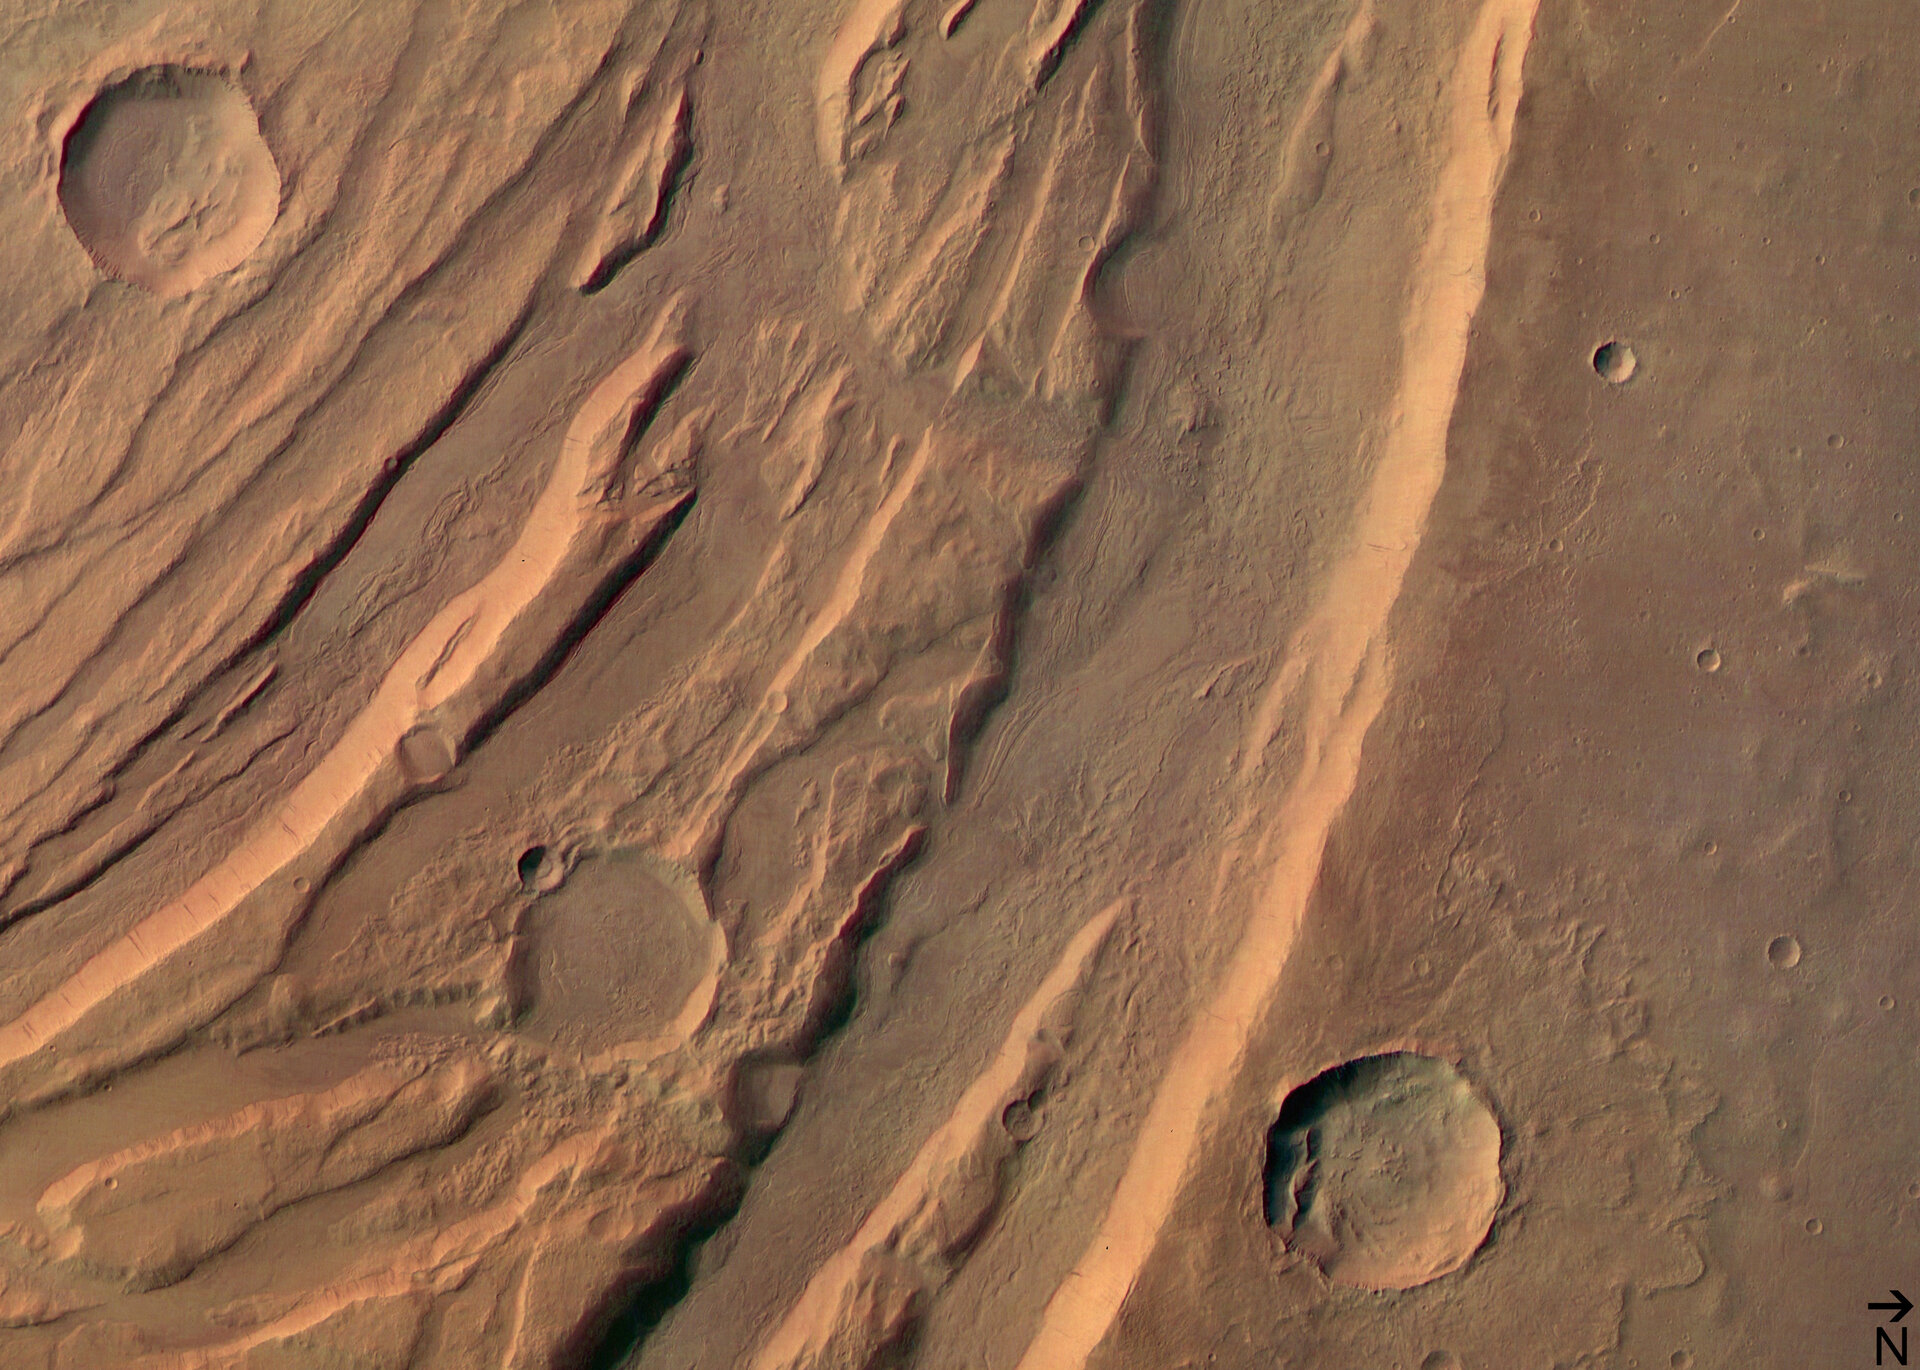 (1) Acheron Fossae horsts and grabens in colour